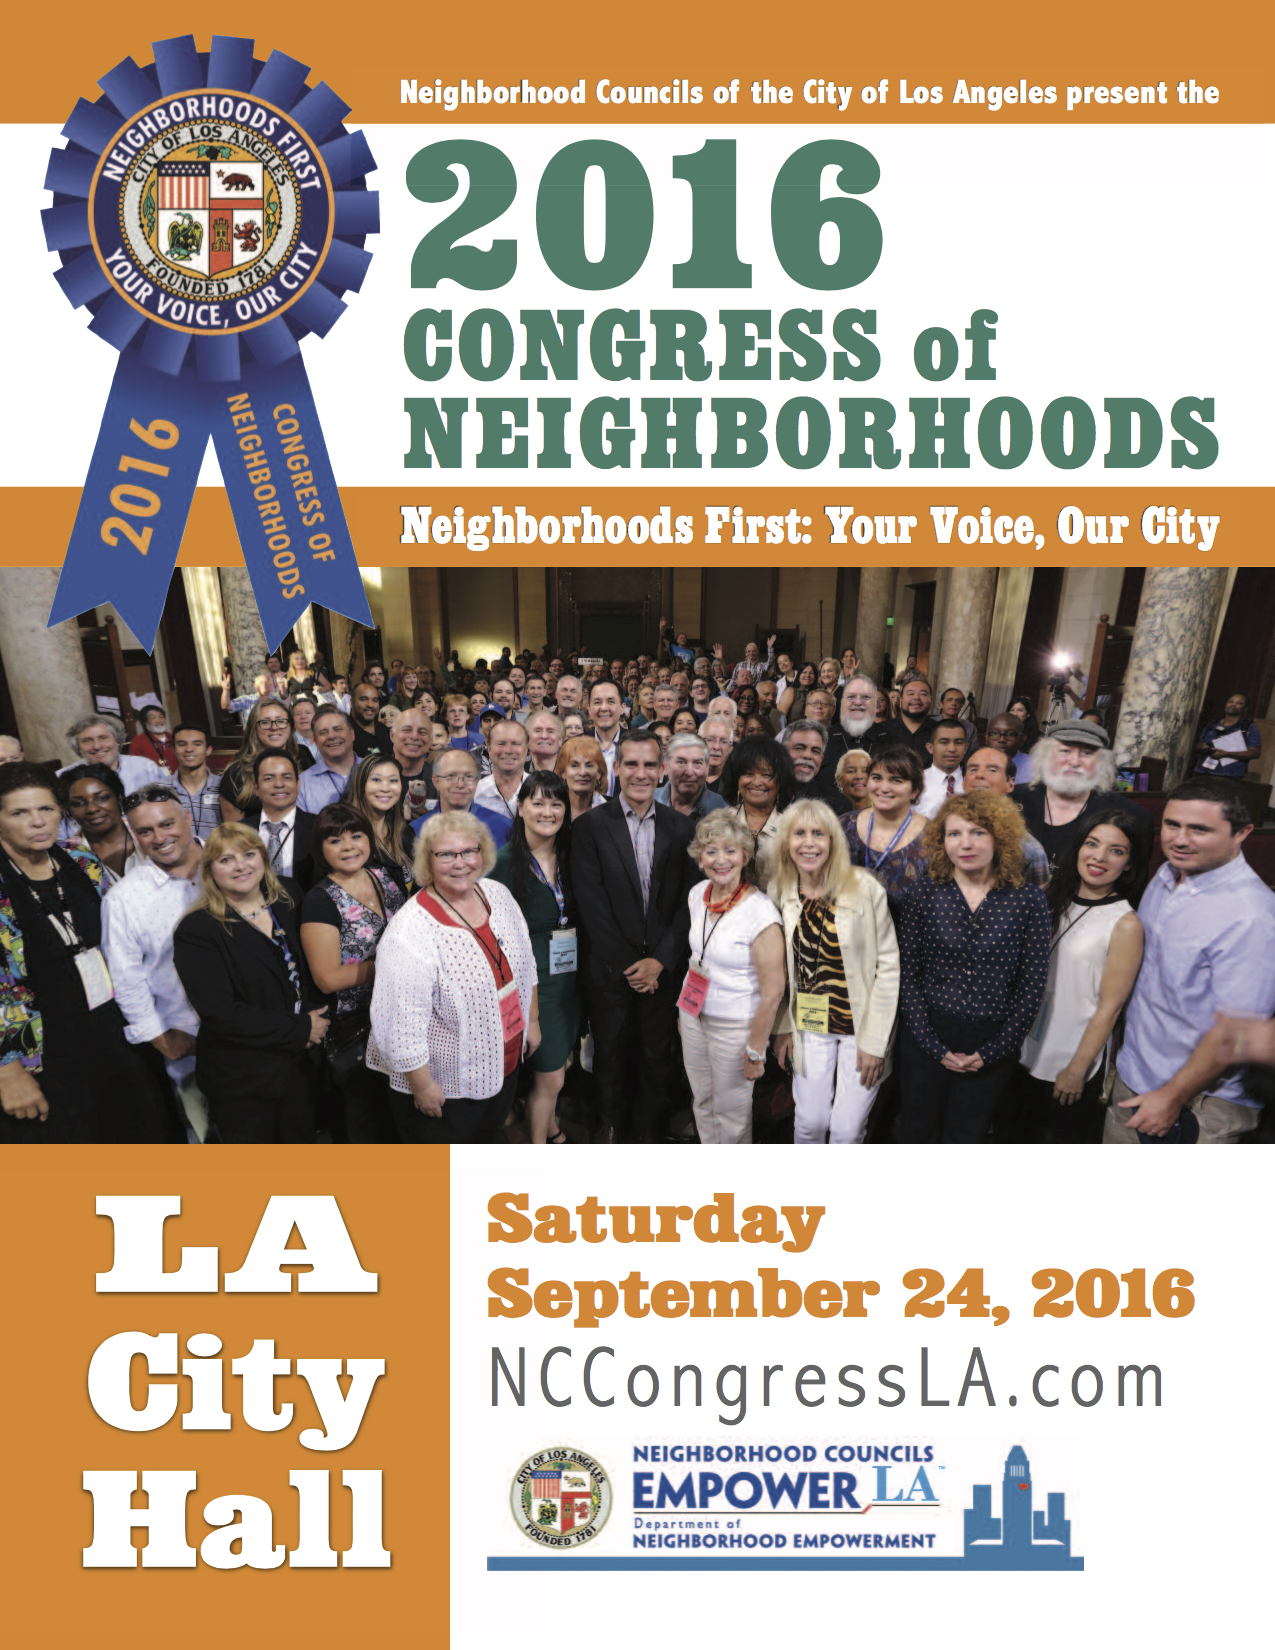 2016 Congress of Neighborhoods Program.jpg